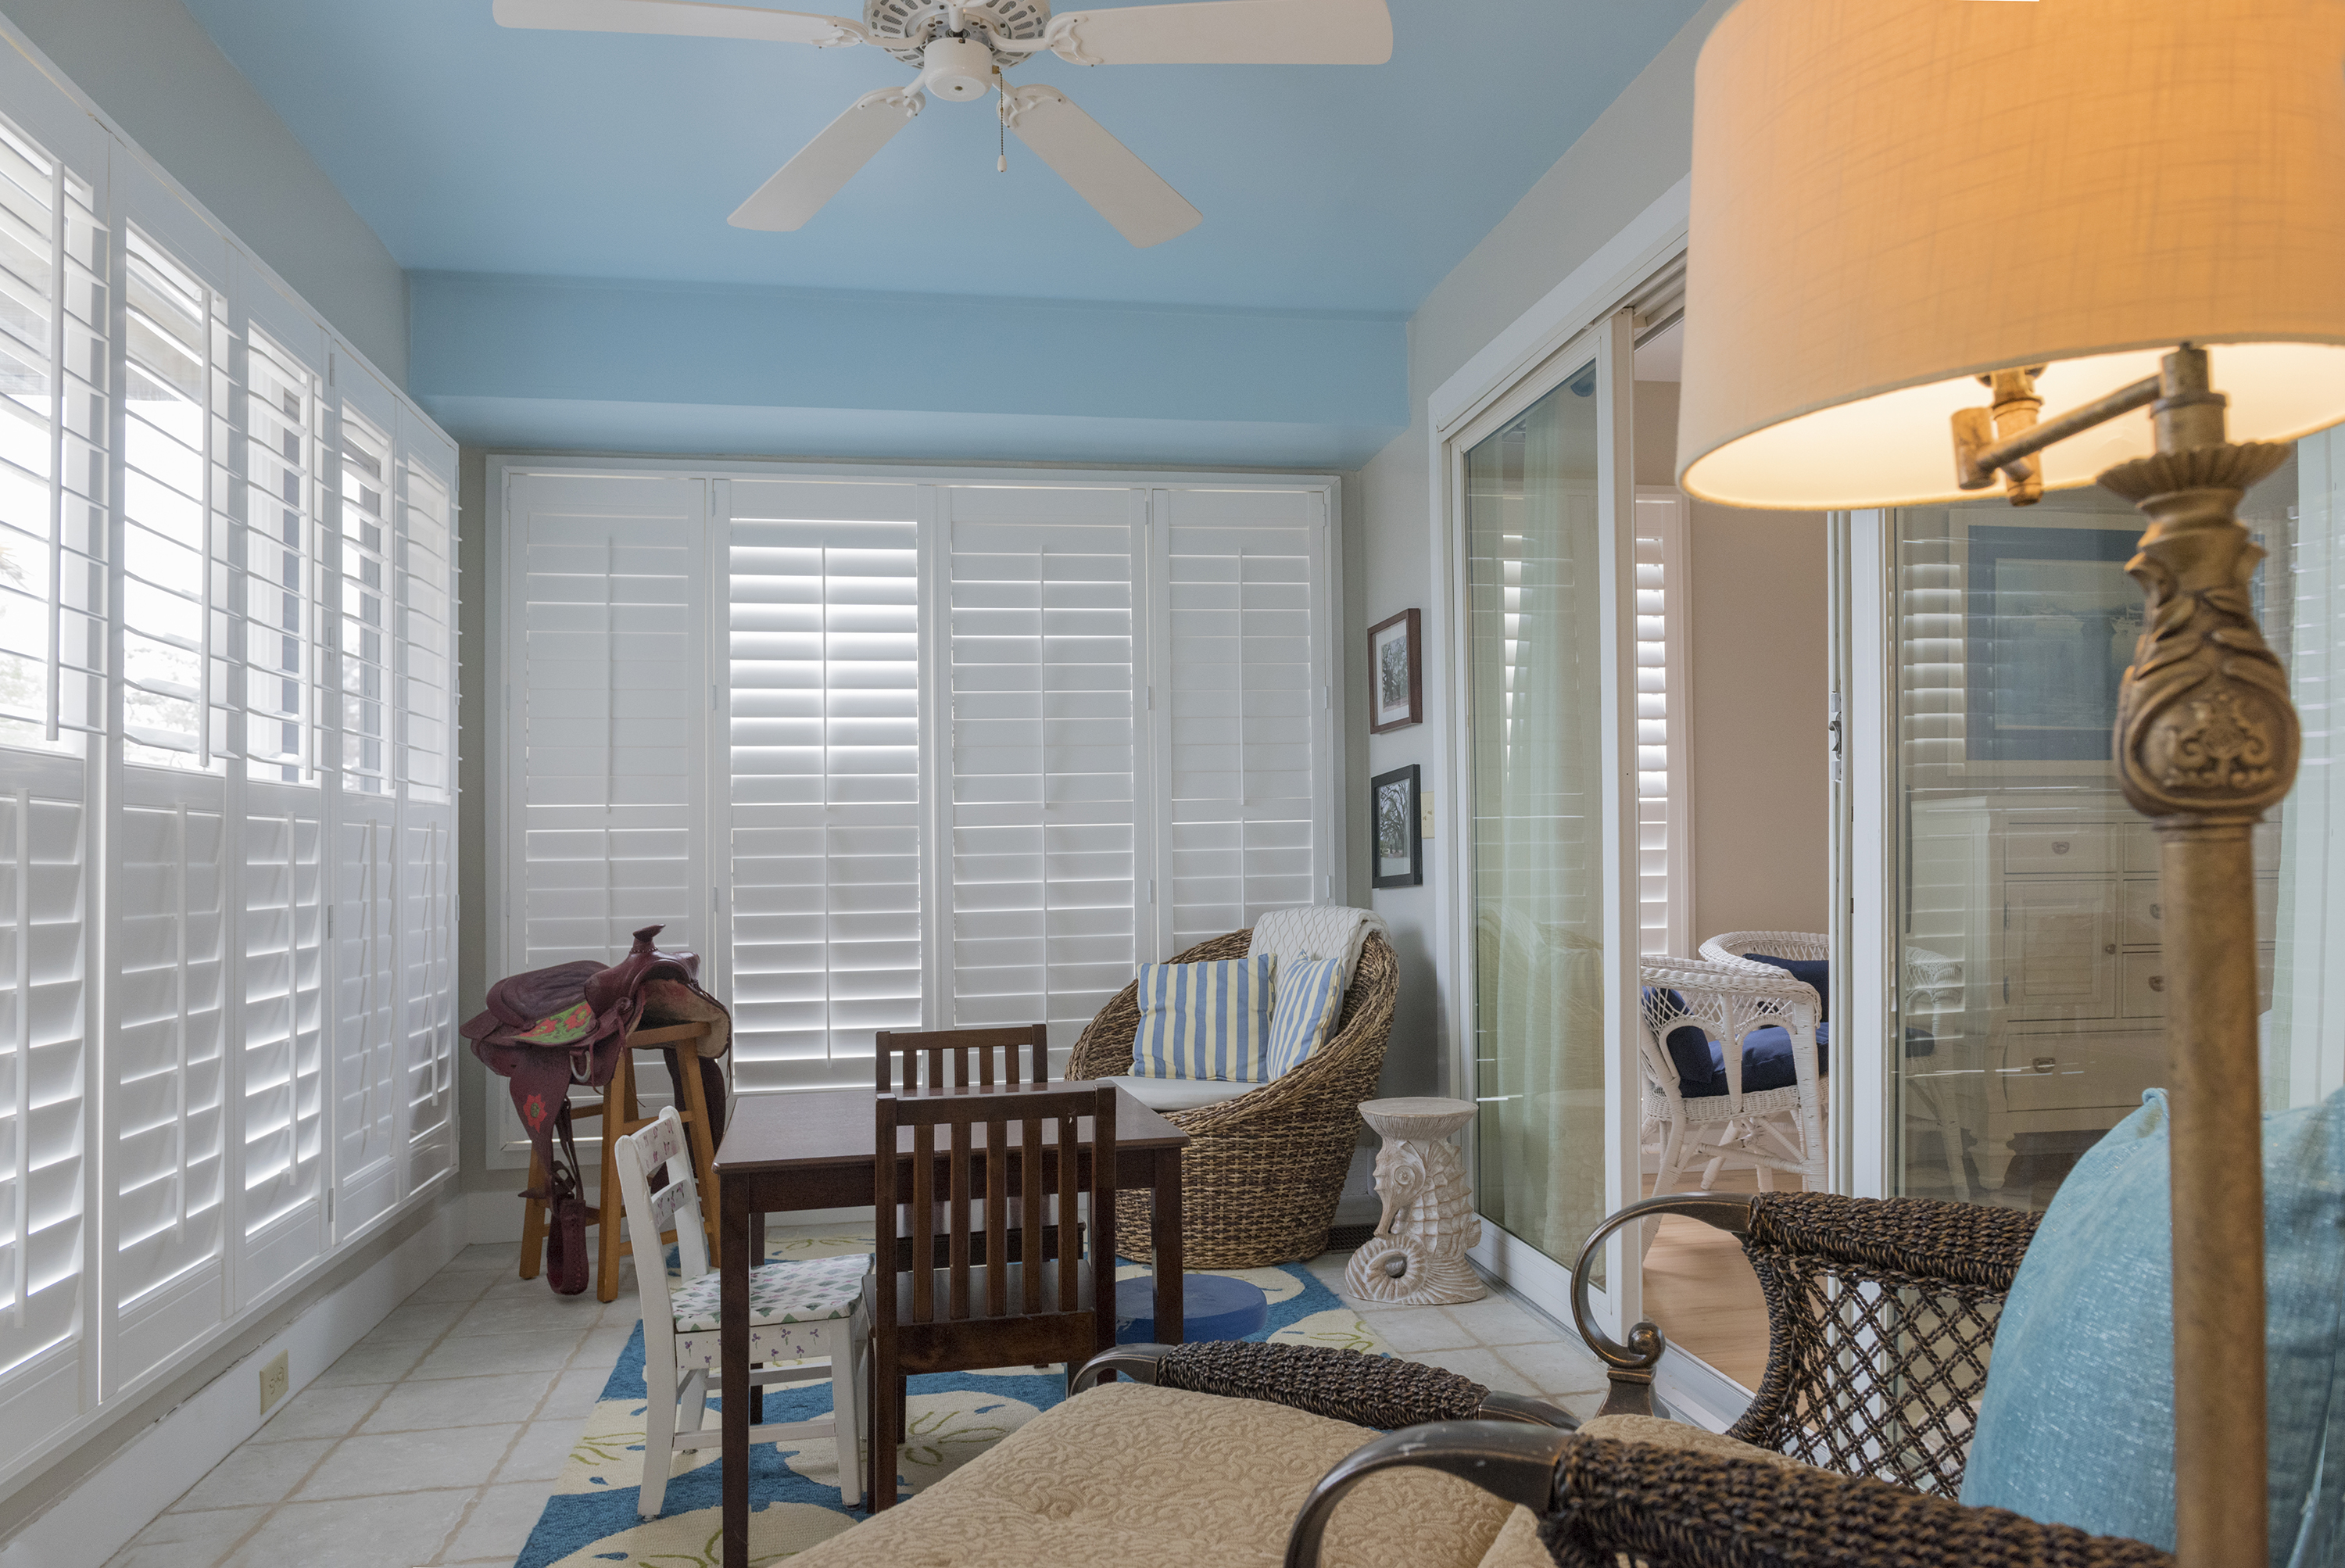 Escape to the sun room with a good book or for quiet conversation.